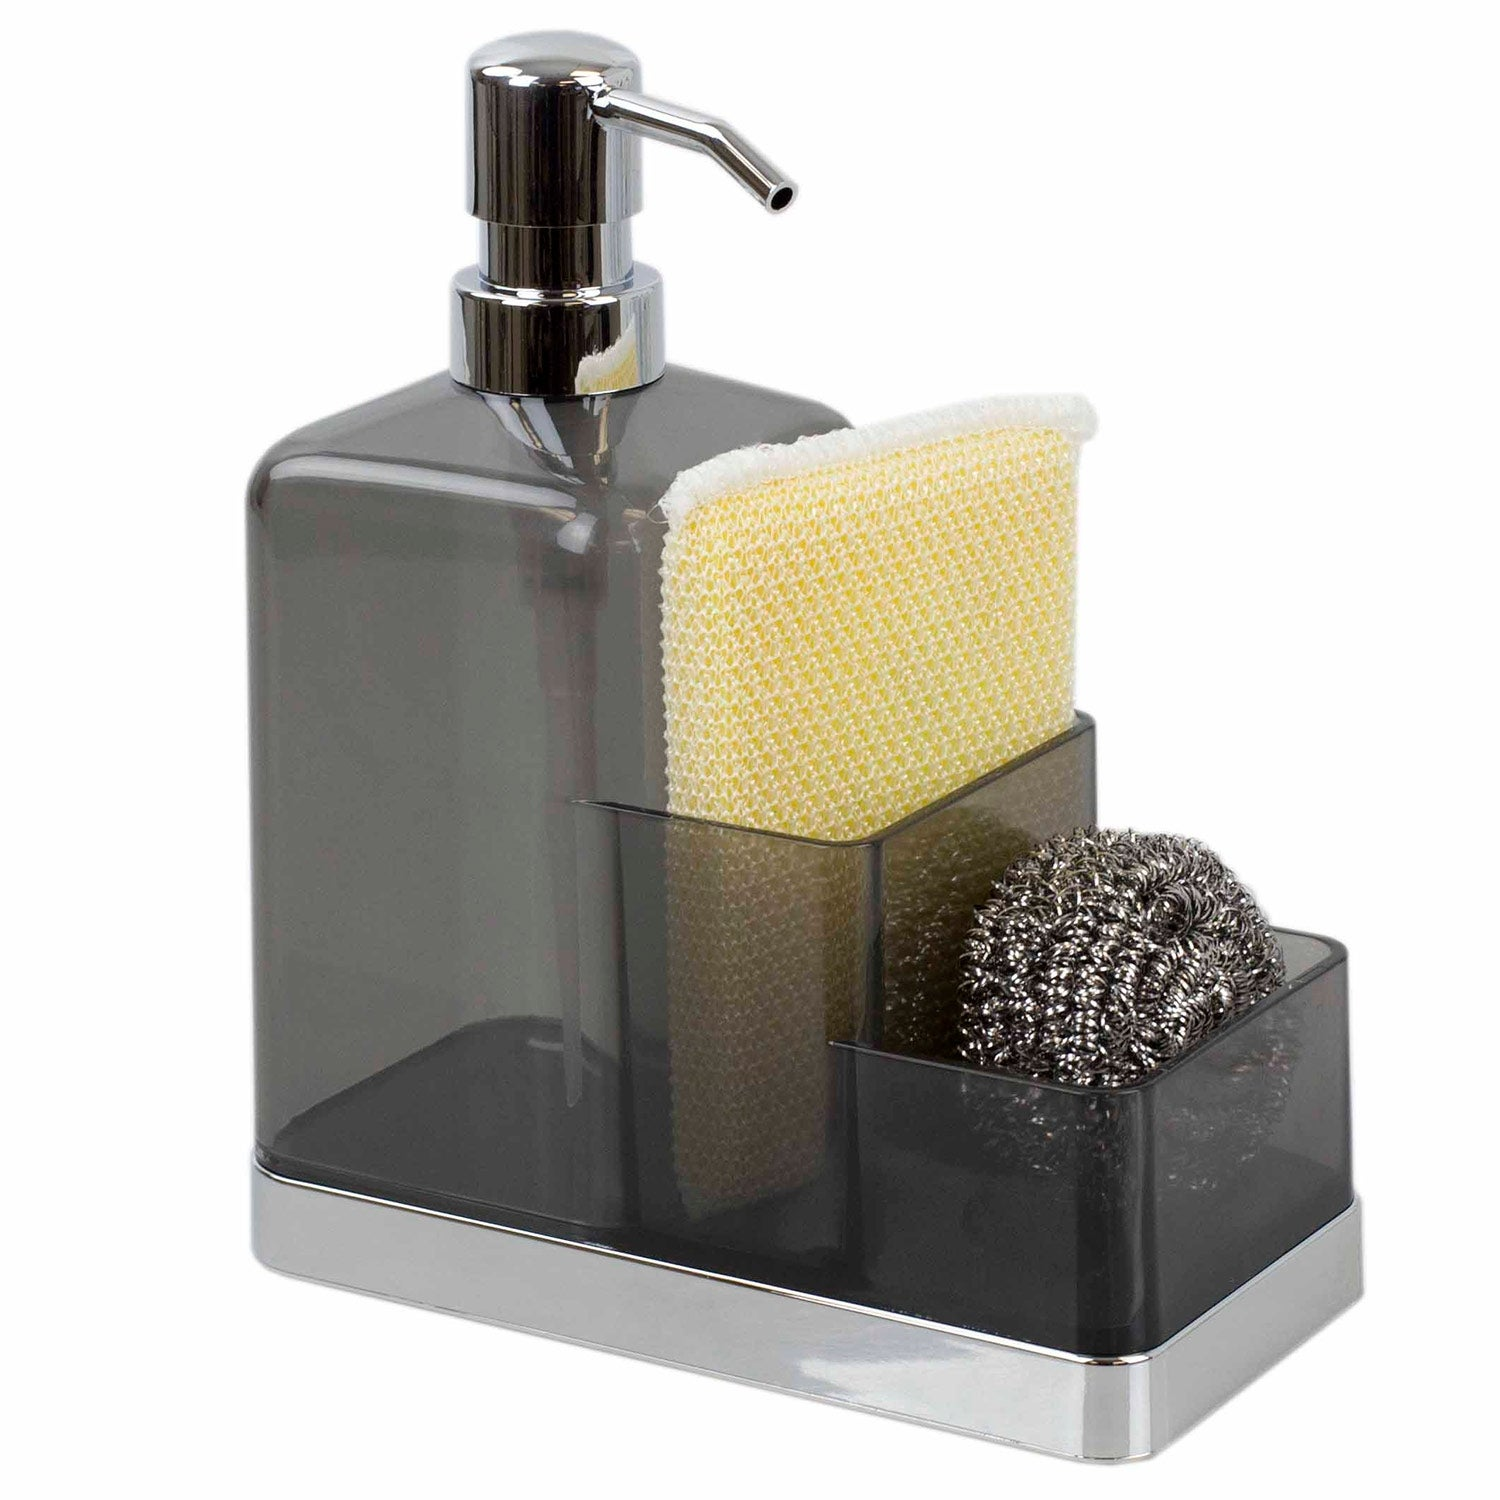 Picture of: Shop Home Basics Soap Dispenser And Sponge Caddy Organizer Gray Silver 8x3x6 5 Inches Overstock 28491253